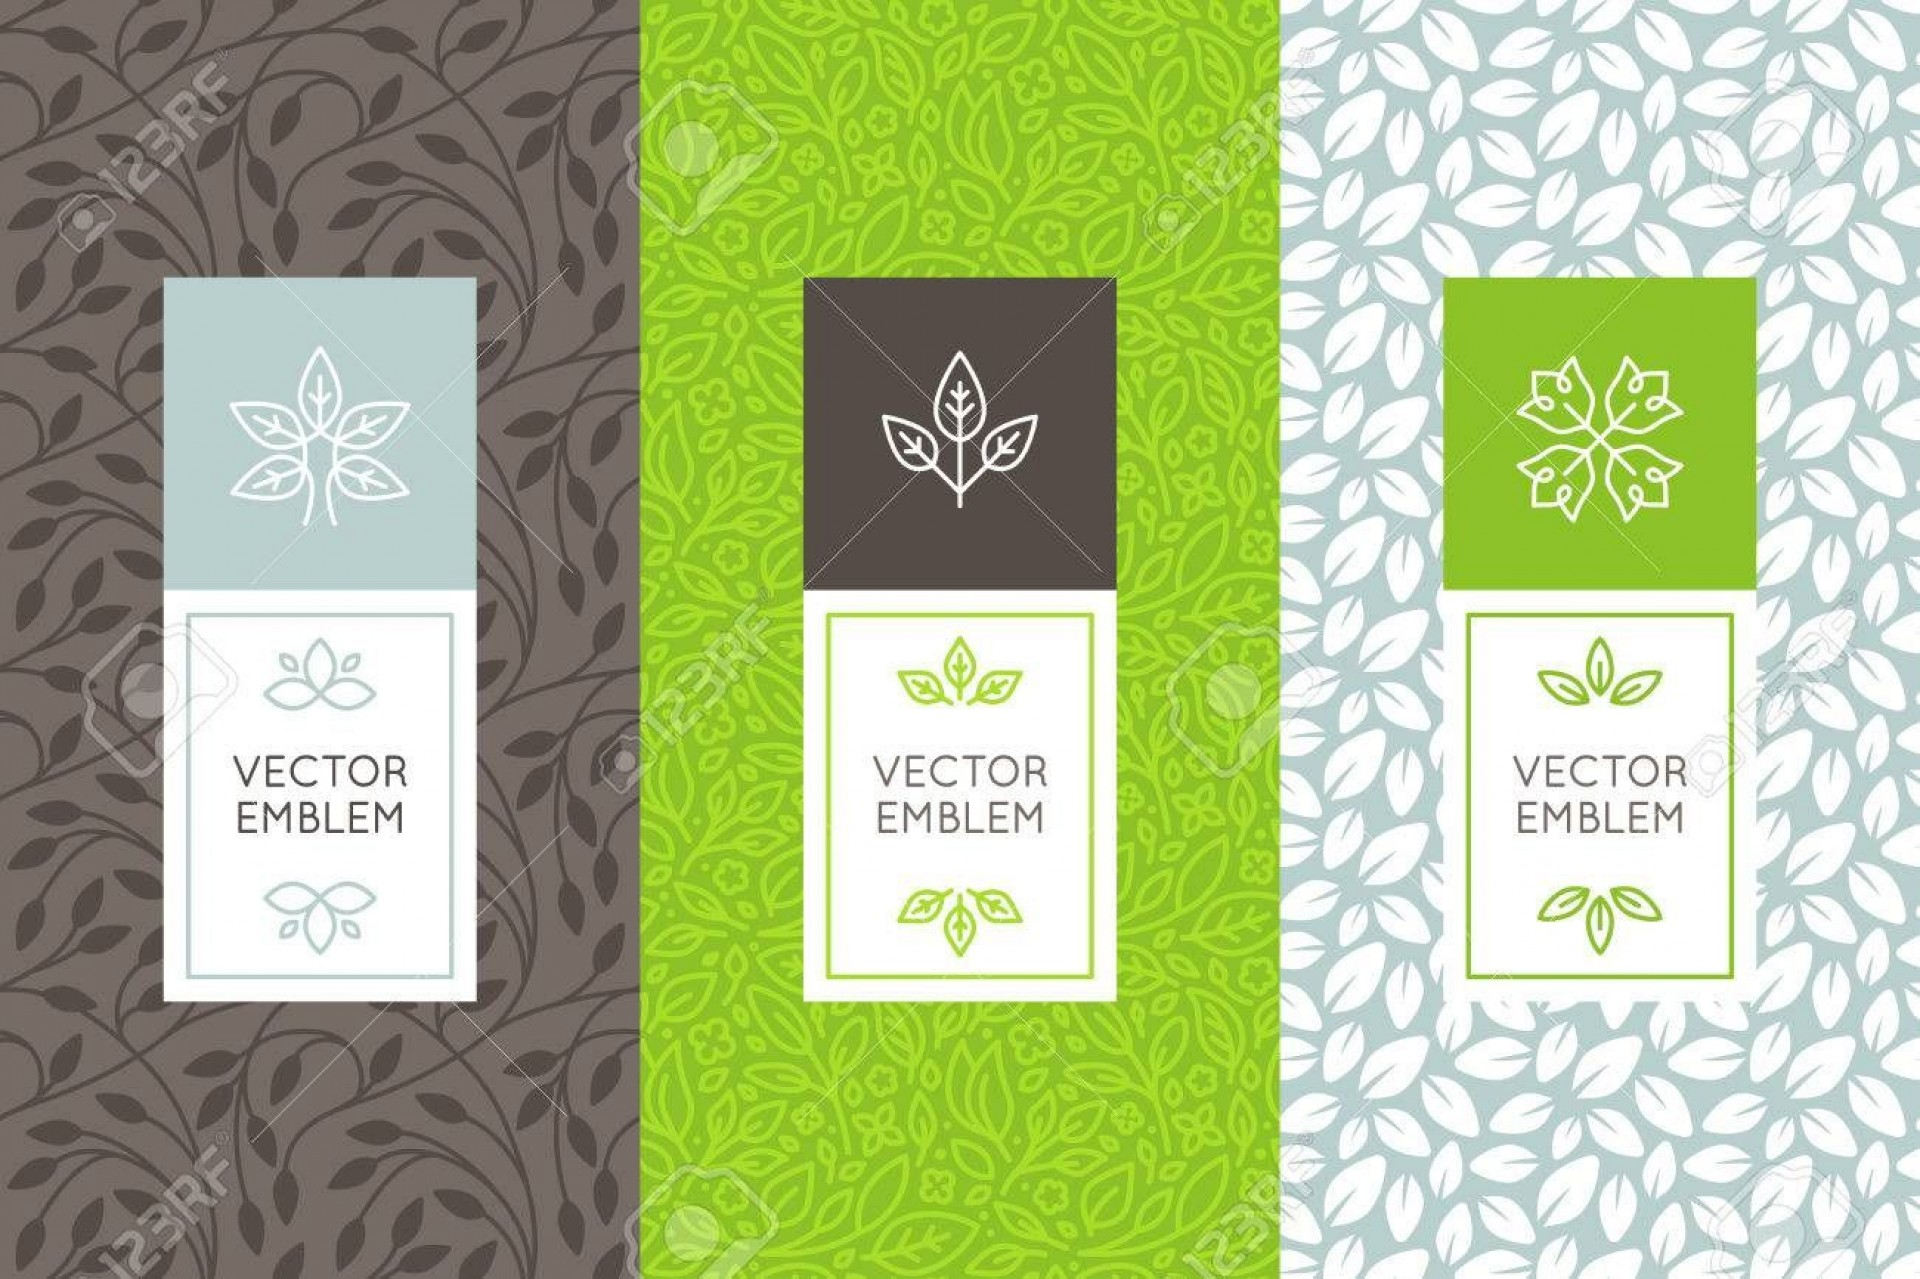 001 Remarkable Product Packaging Design Template High Resolution  Templates Free Download Sample1920